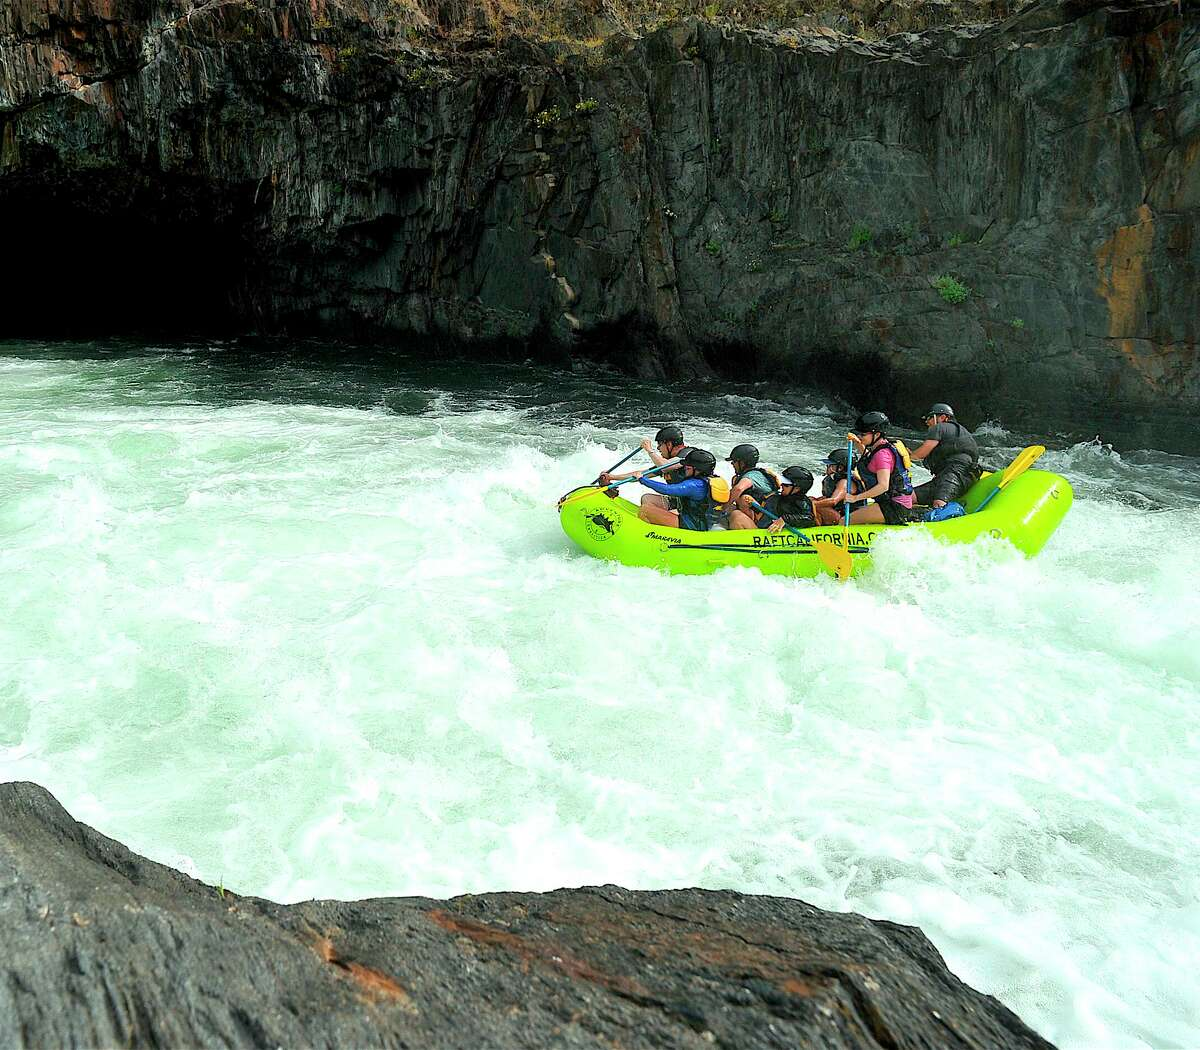 A rafting trip starts the plunge down Tunnel Chute on the Middle Fork American River, a white-water cascade where you sail down through what feels like a tunnel hole in the rock. It was created by miners during the Gold Rush.